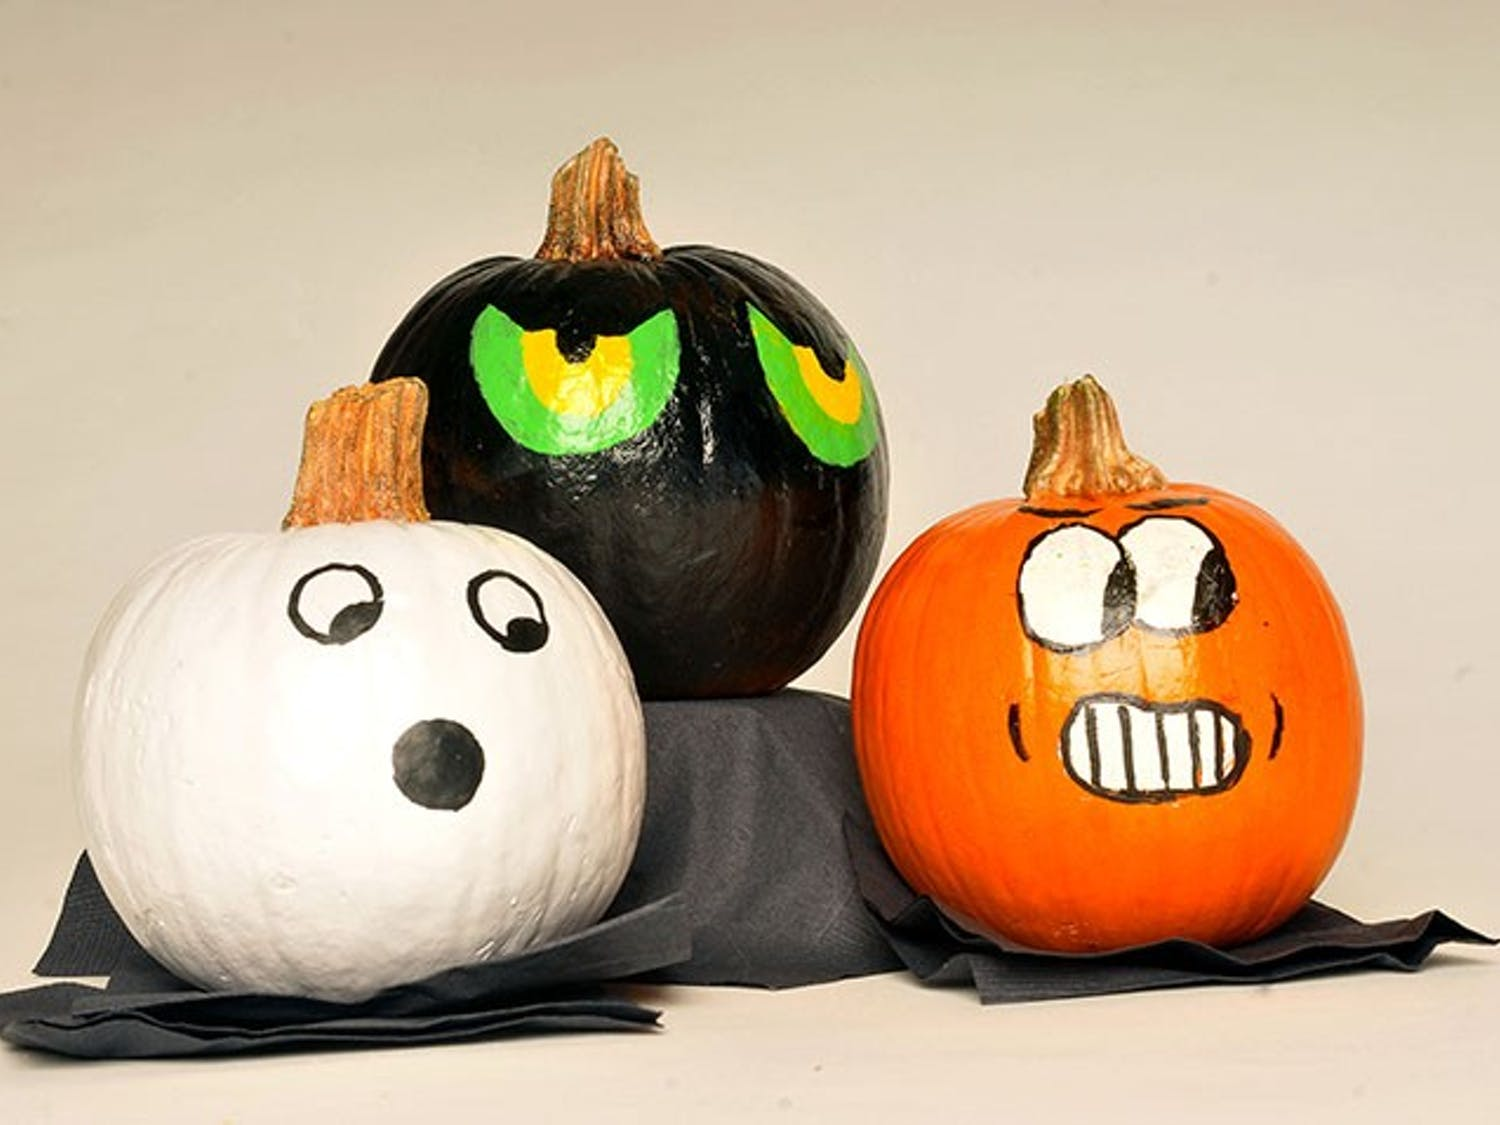 A set of three painted pumpkins on display. Painting a pumpkin is sometimes used as an alternative to carving it.